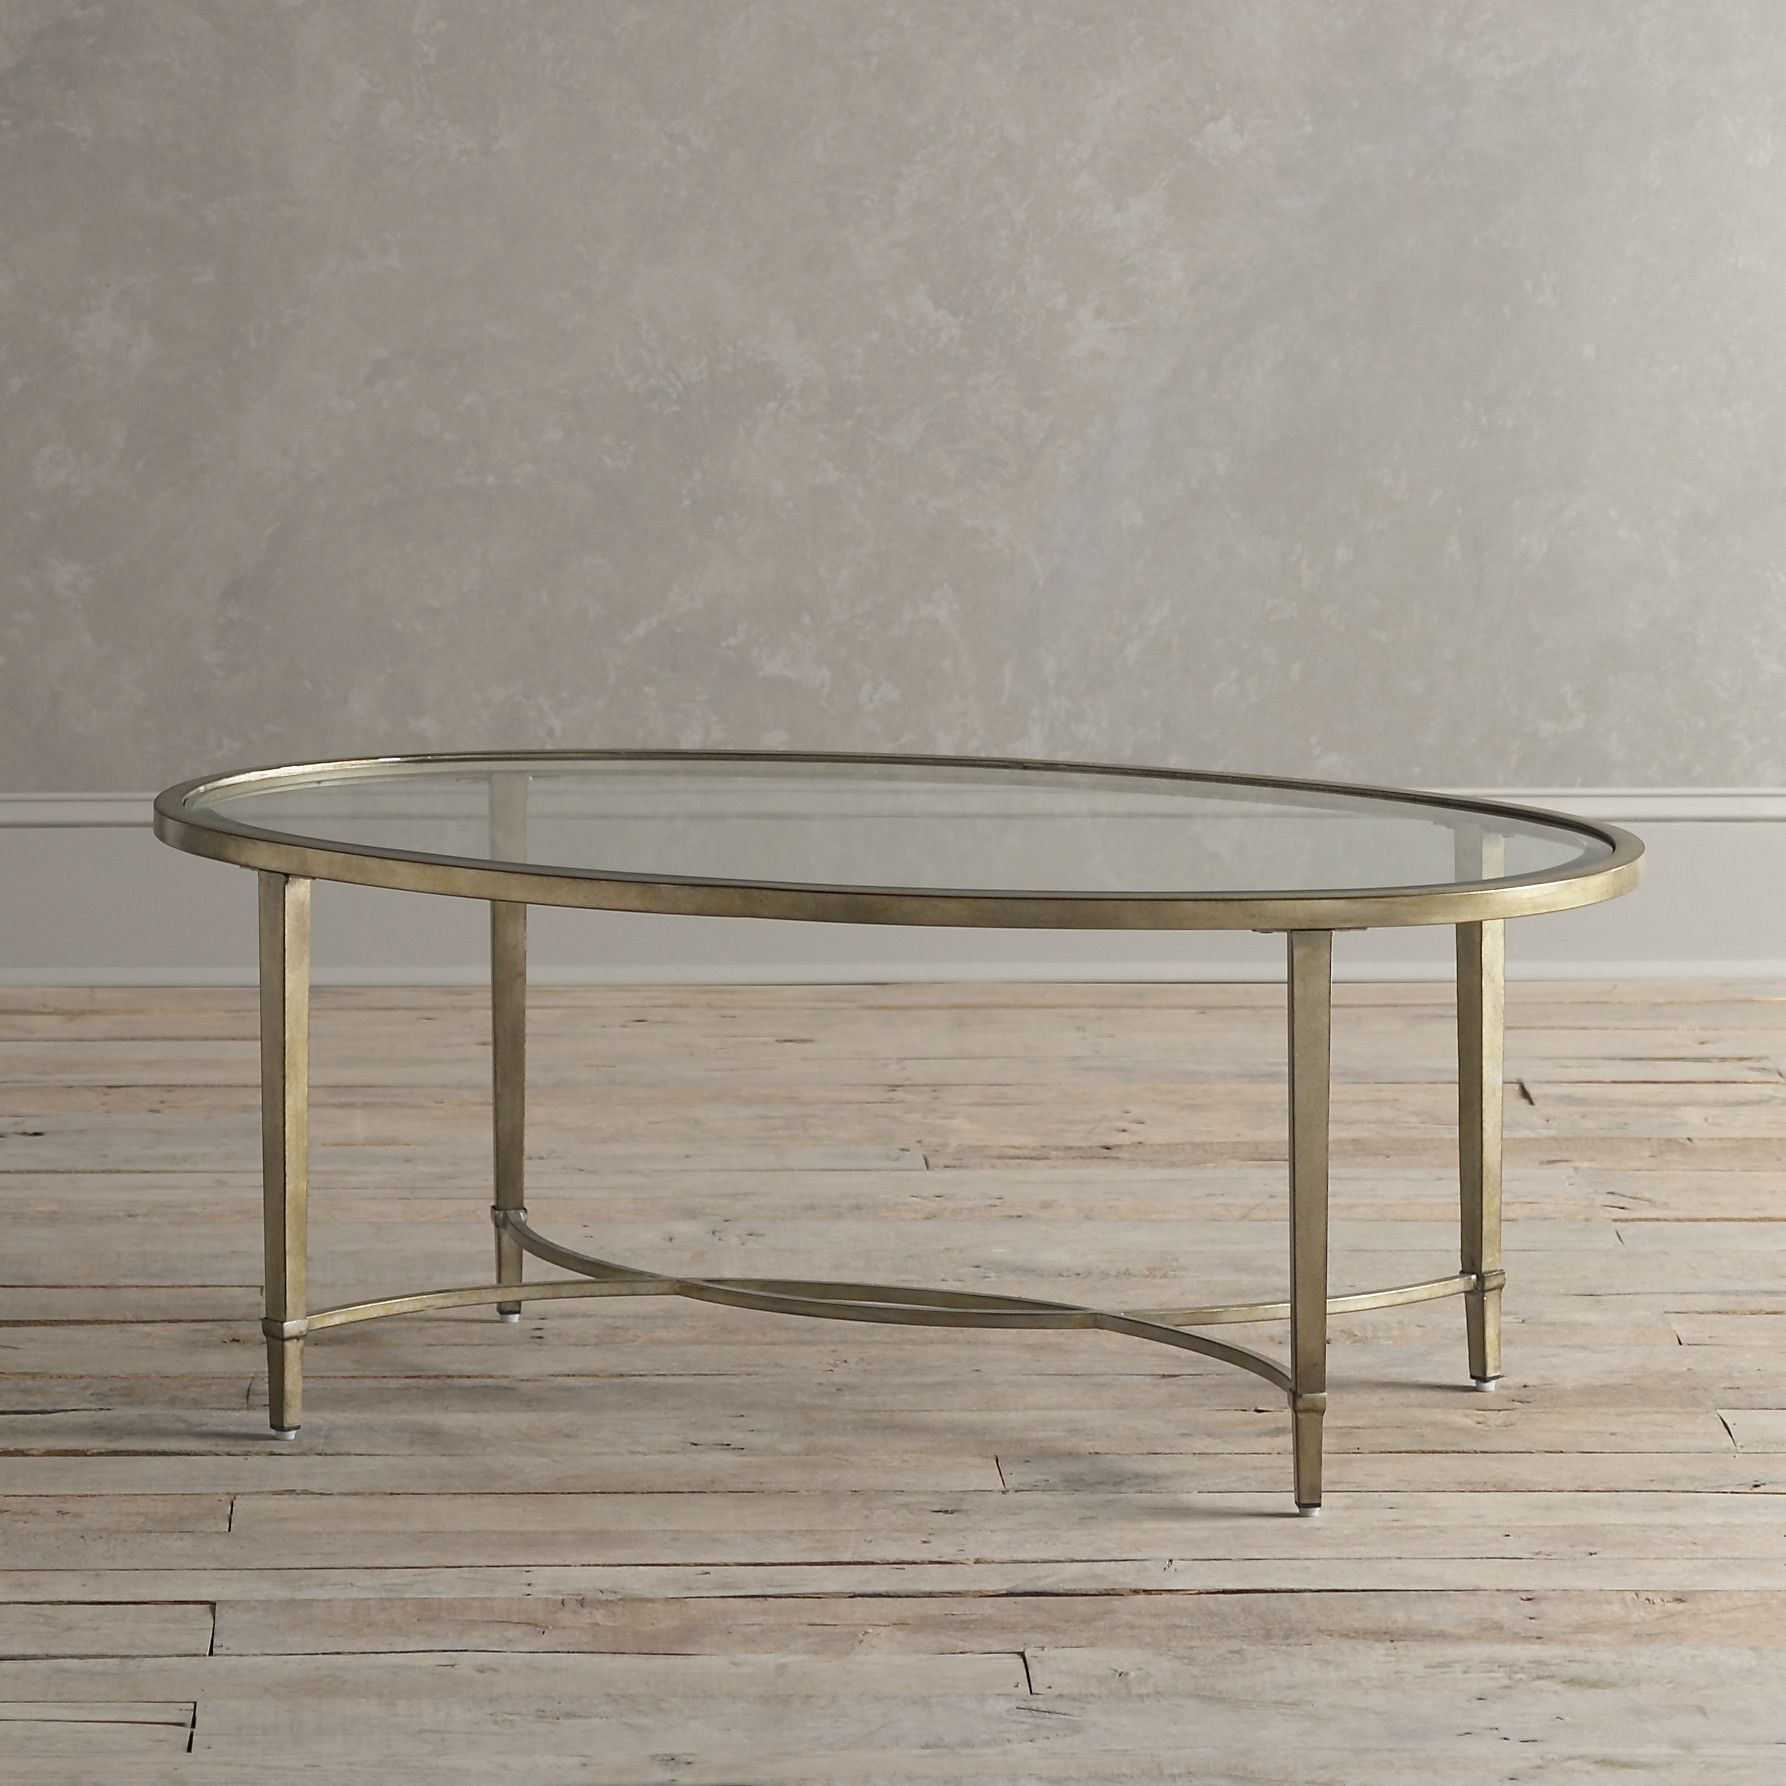 Oval Coffee Table With Metal Legs: Birch Lane Horton Coffee Table